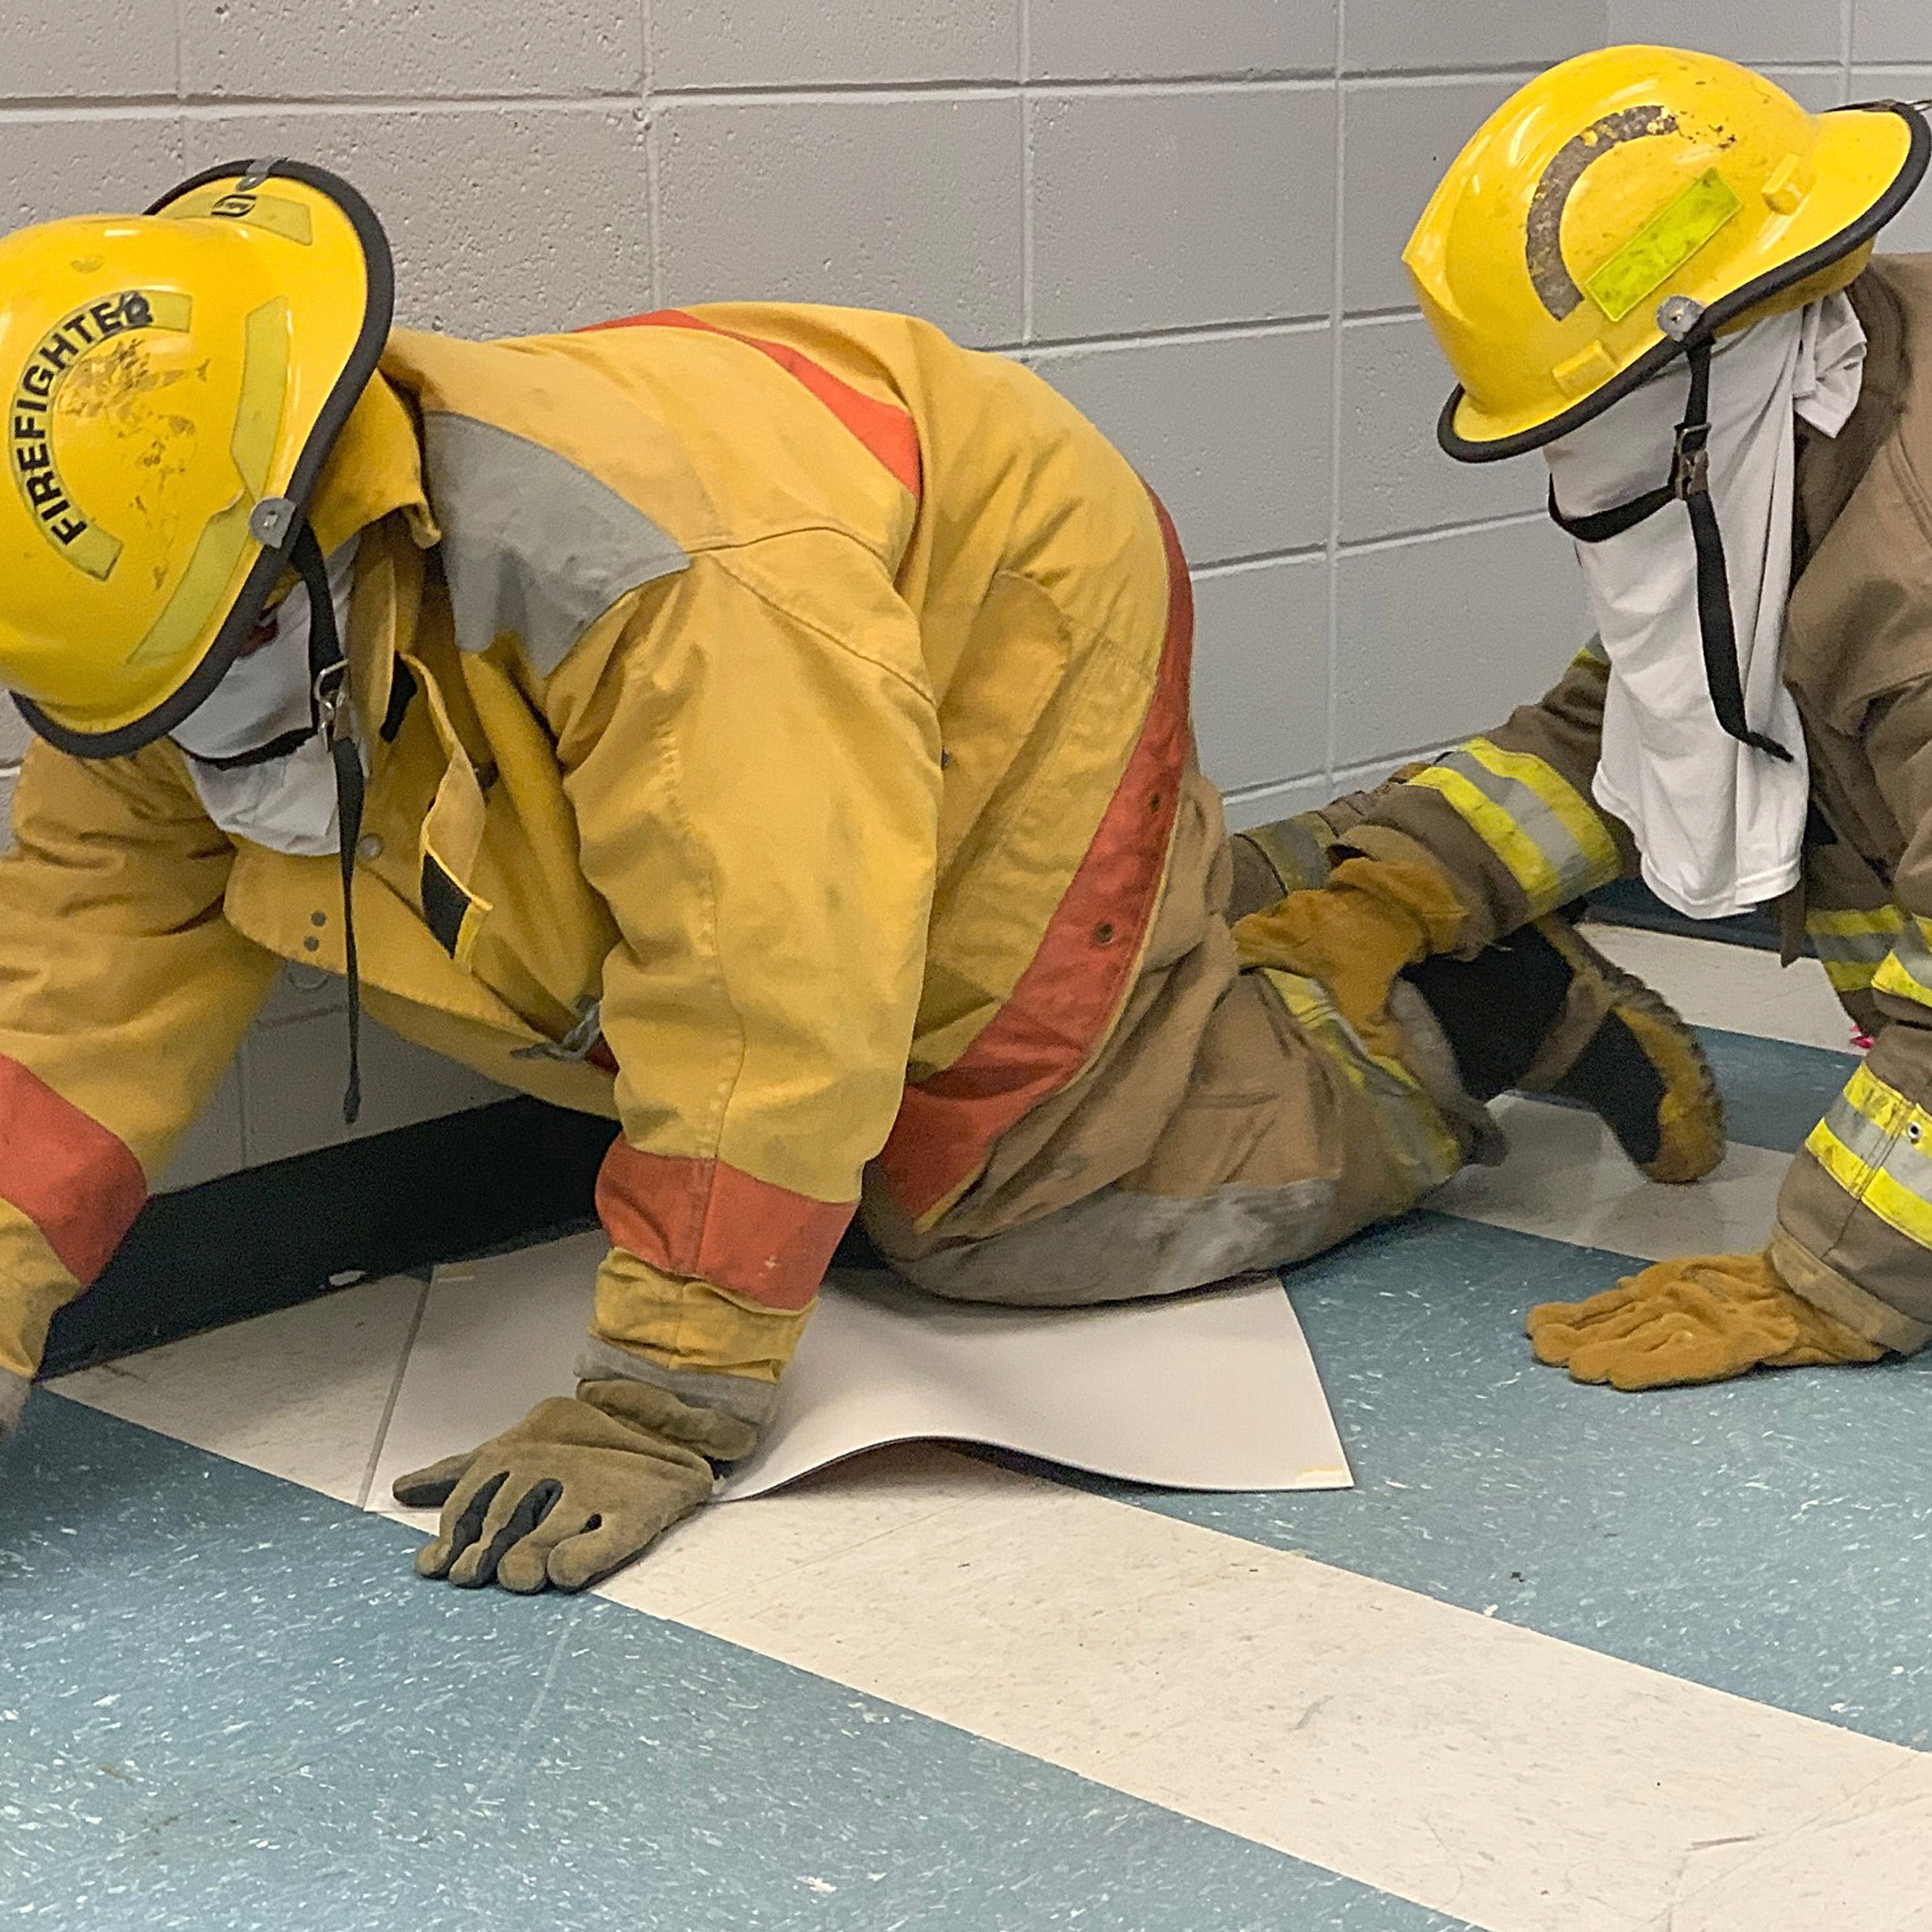 FCAHS Students Receive PASS Training